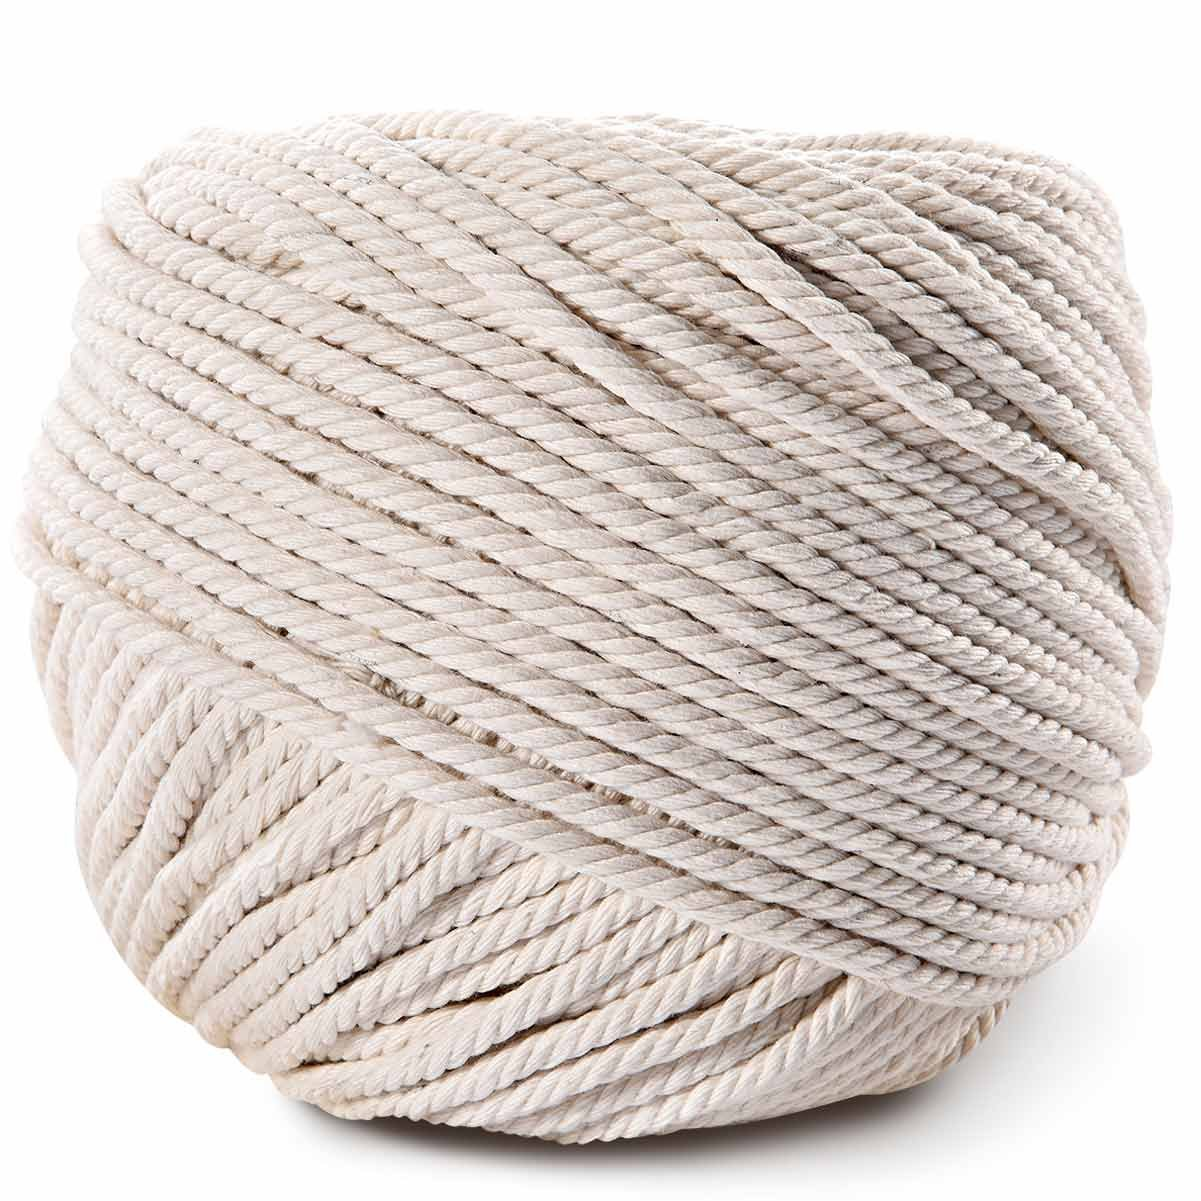 Macrame Cord,LOOMY 4mm 109 YD Natural Cotton Rope and Macrame Handmade Crafts Supplies Best for Wall Hanging Plant Hanger Making